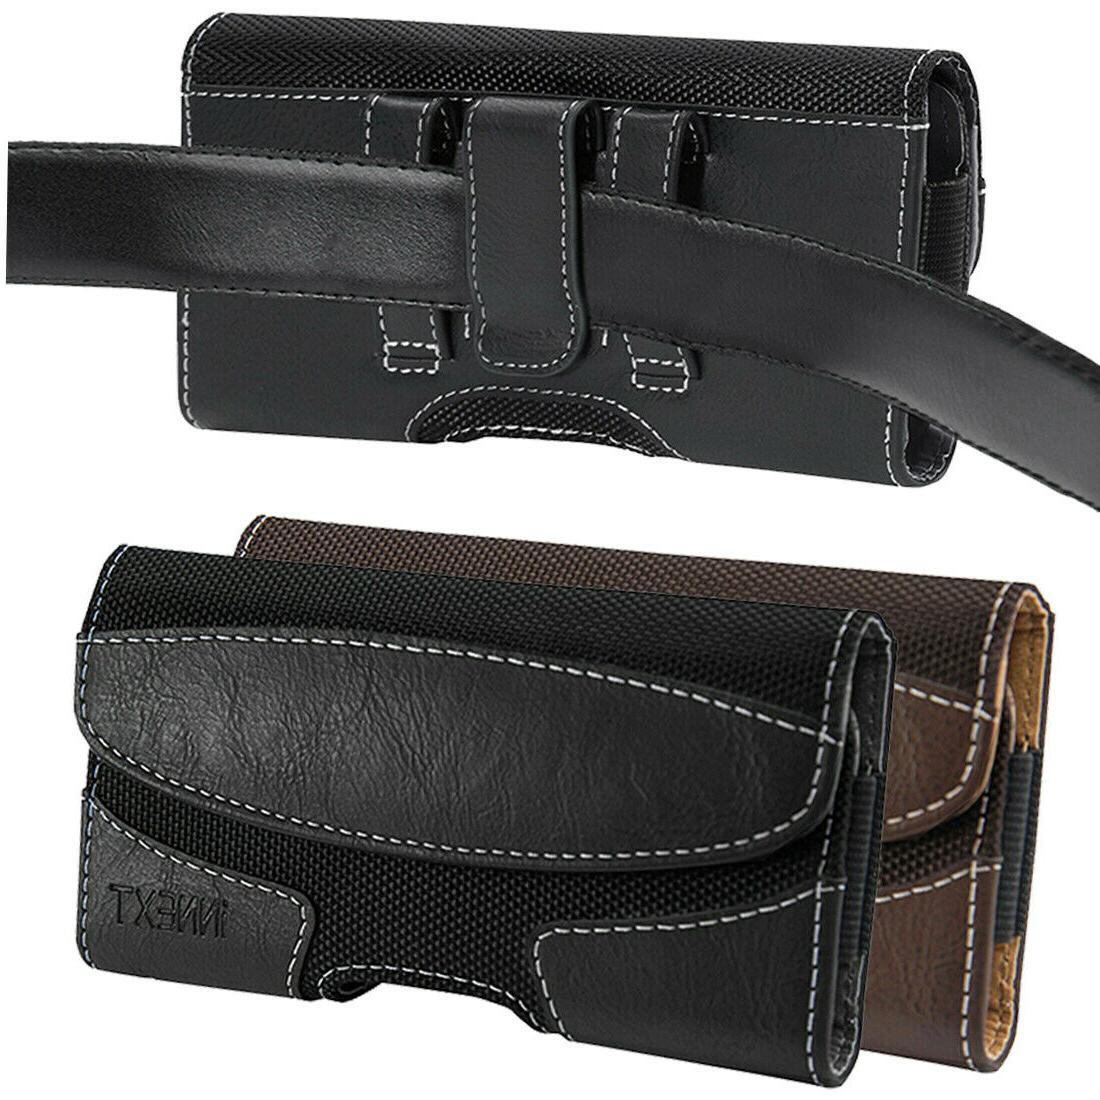 horizontal leather cell phone pouch case cover